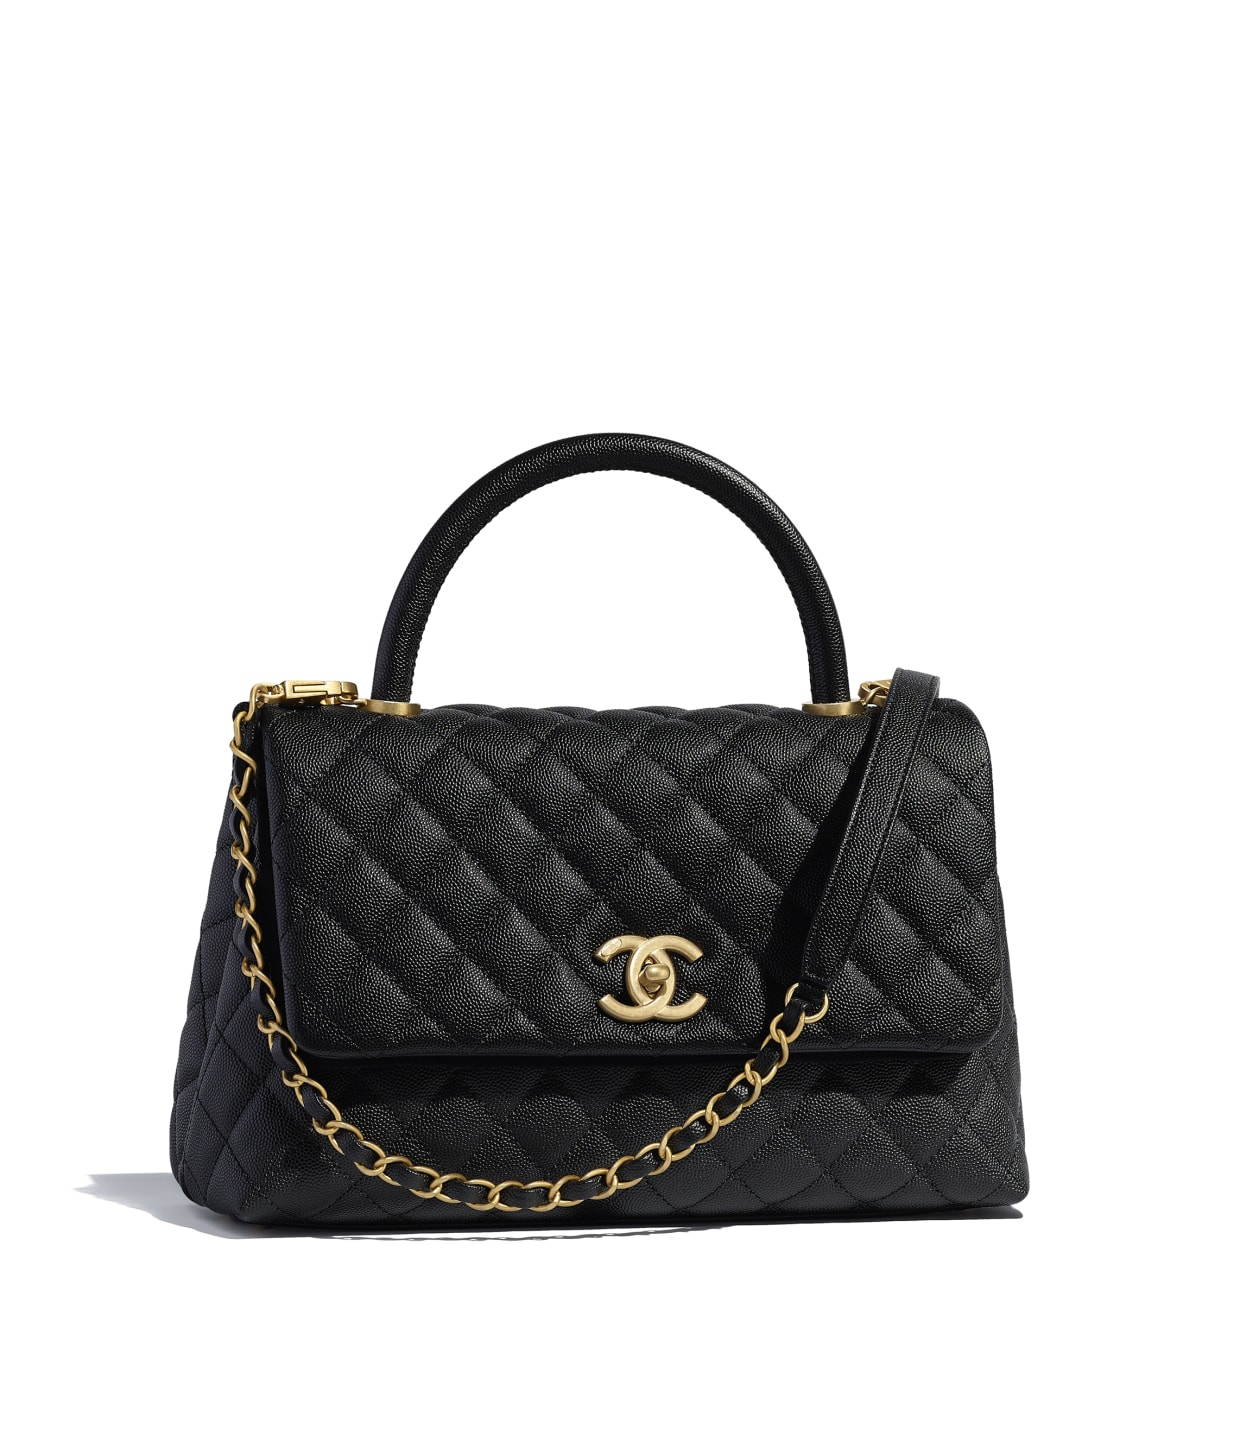 Grained Calfskin Gold Tone Metal Black Flap Bag With Top